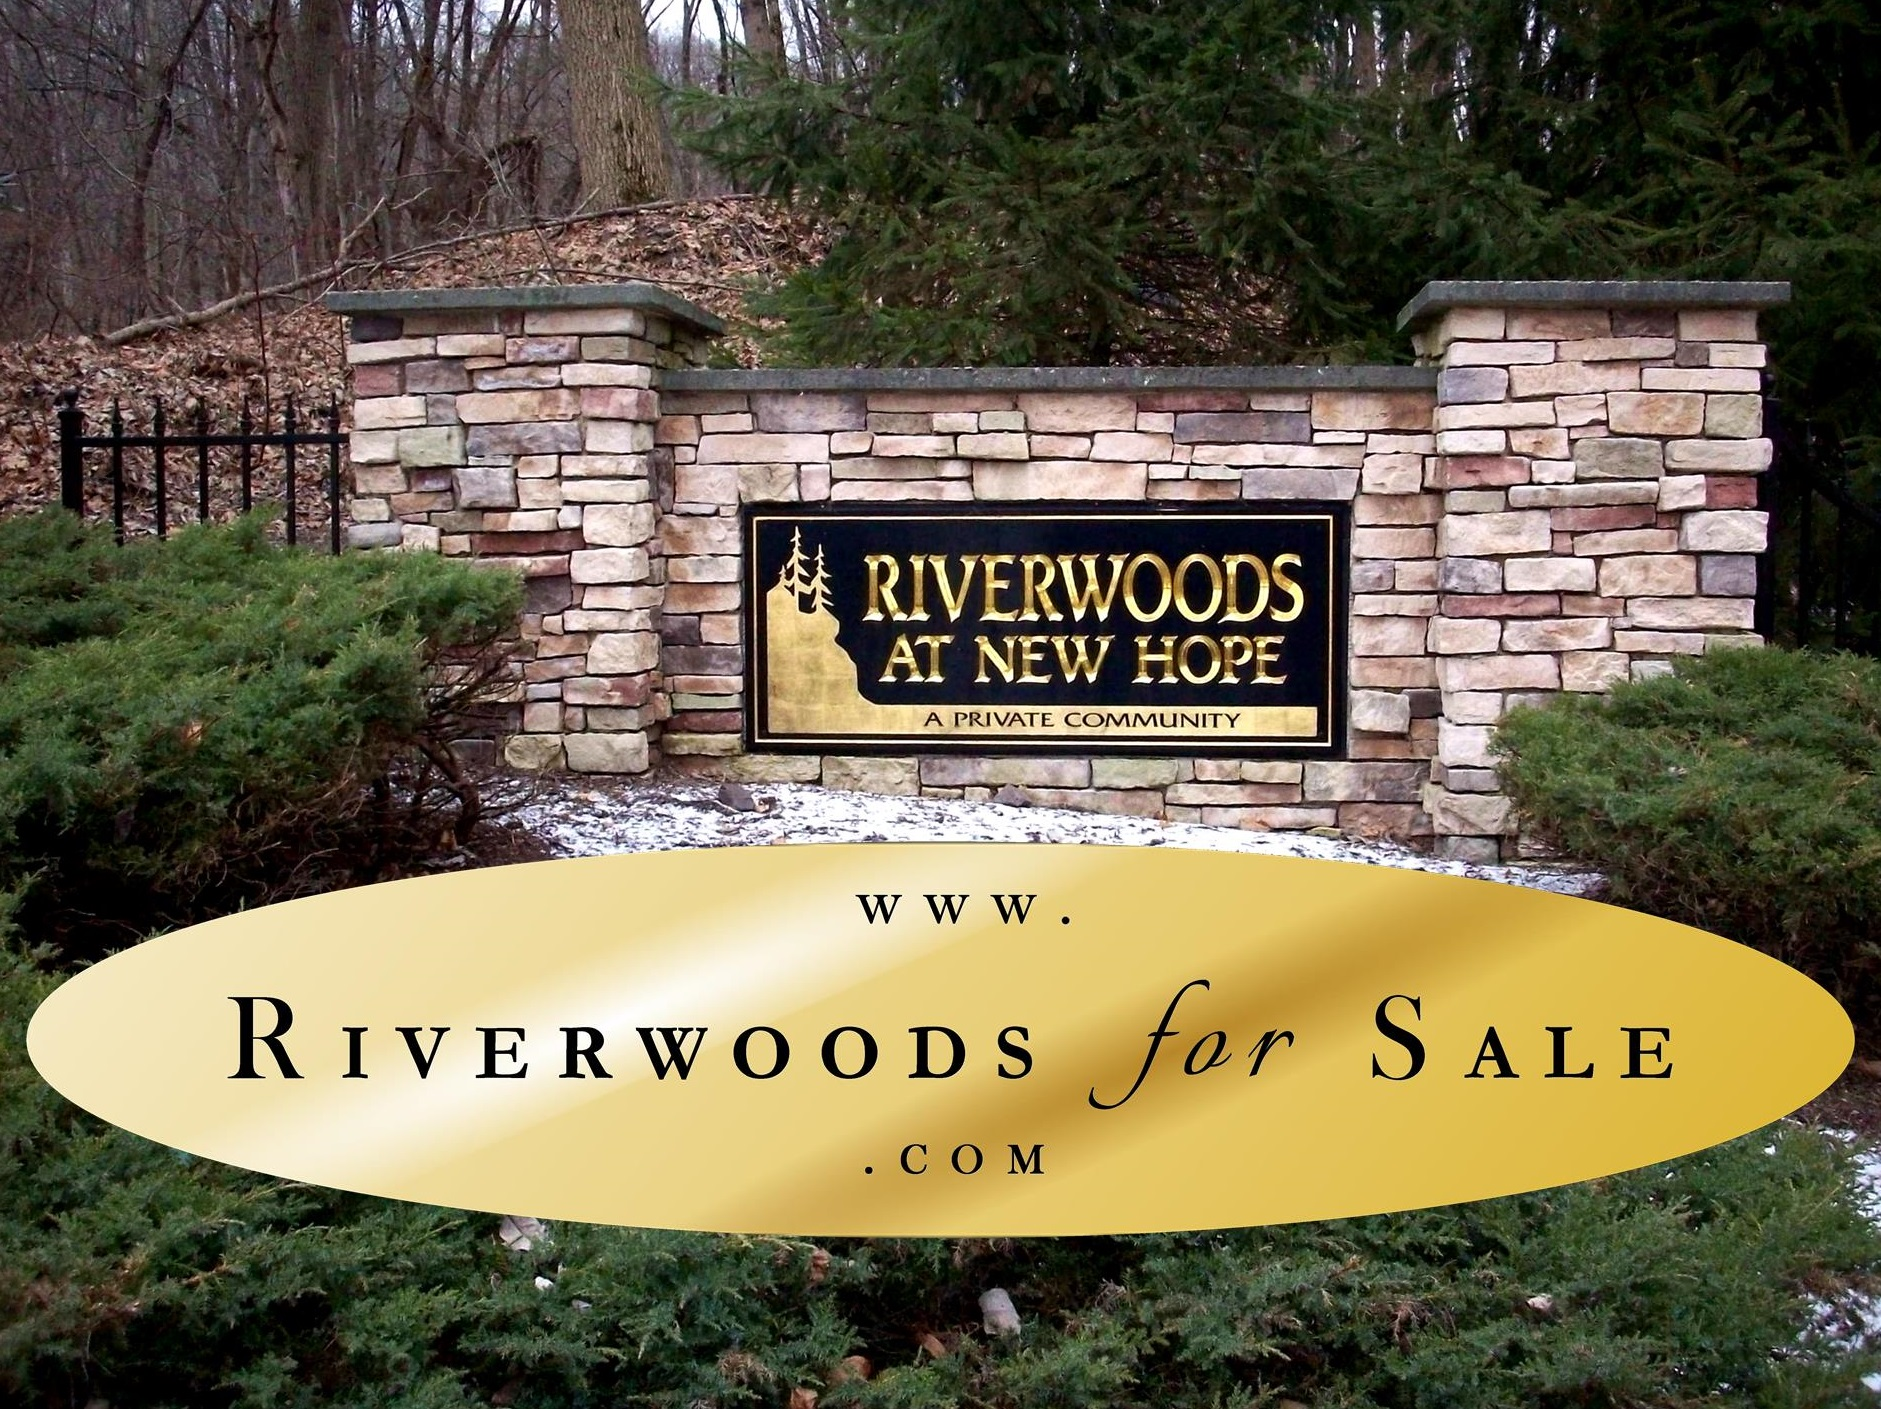 Riverwoods at New Hope PA Homes for Sale, #NewHopePAHomesForSale, #NewHopePA, New Hope Realtor, New Hope Realtors, #NewHopeRealtor, #NewHopeRealtors, Steve Walny, Weidel